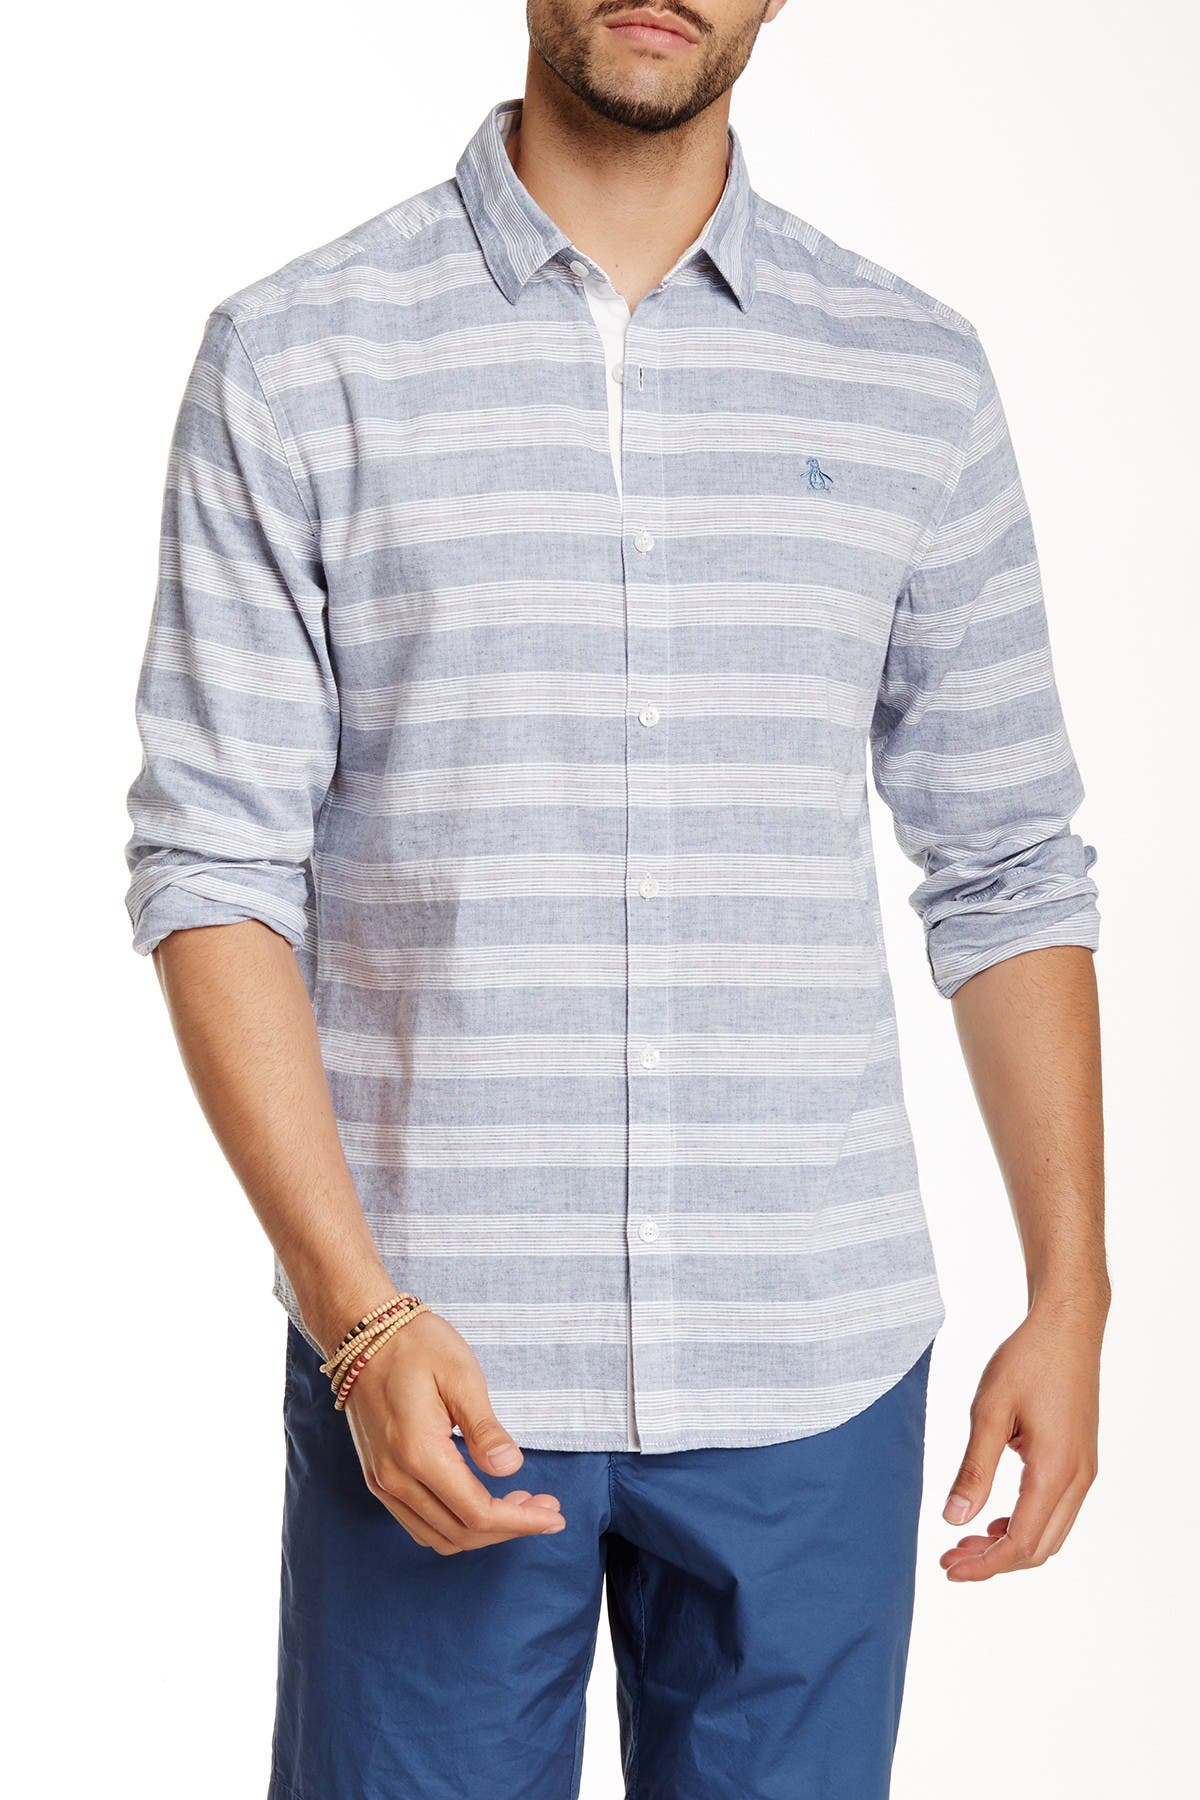 Image of Original Penguin Horizontal Stripe Shirt